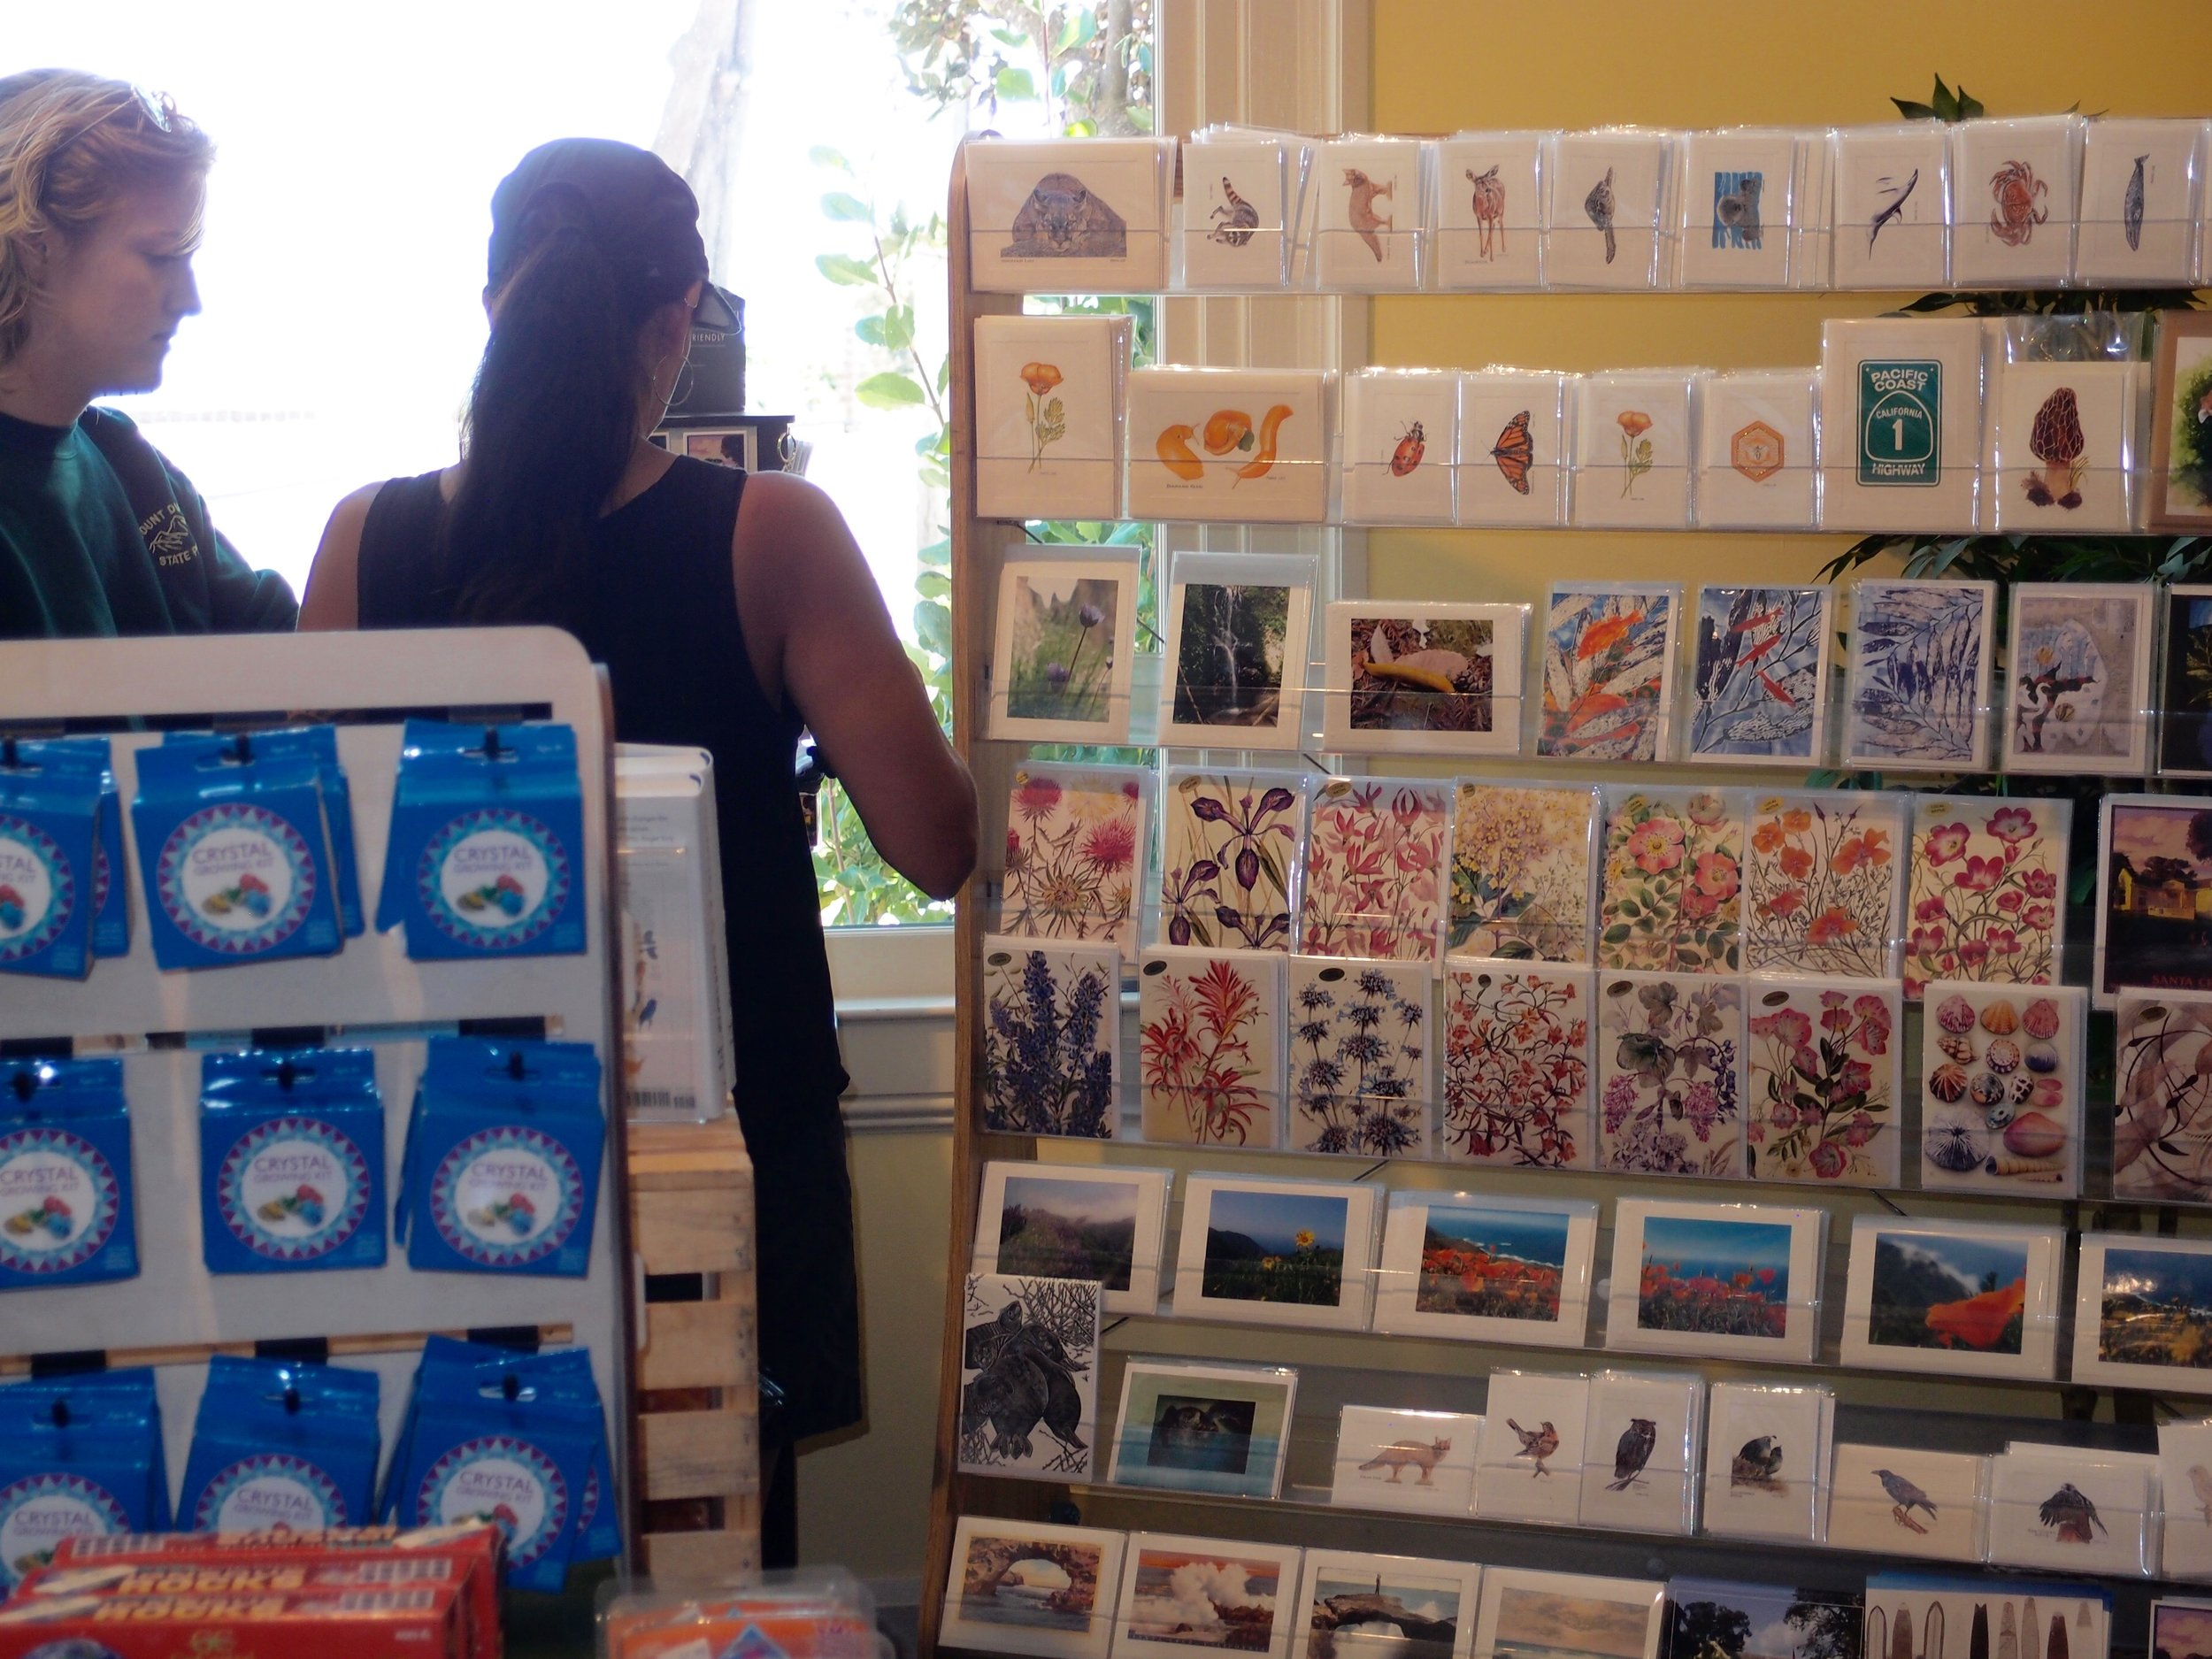 The museum has carried my note cards of original artwork and popular photography for many years.